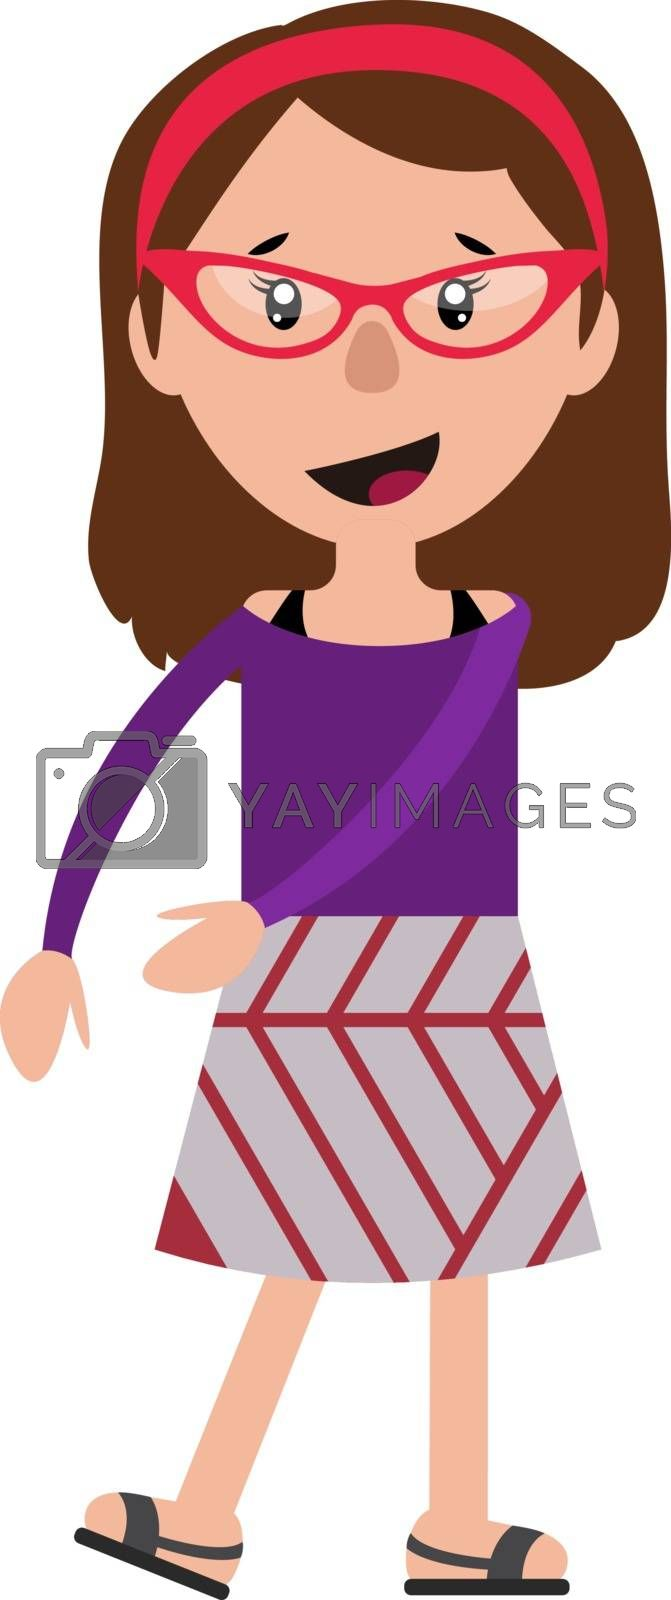 Royalty free image of Cheerful teenage dancing girl with a red glasses illustration ve by Morphart